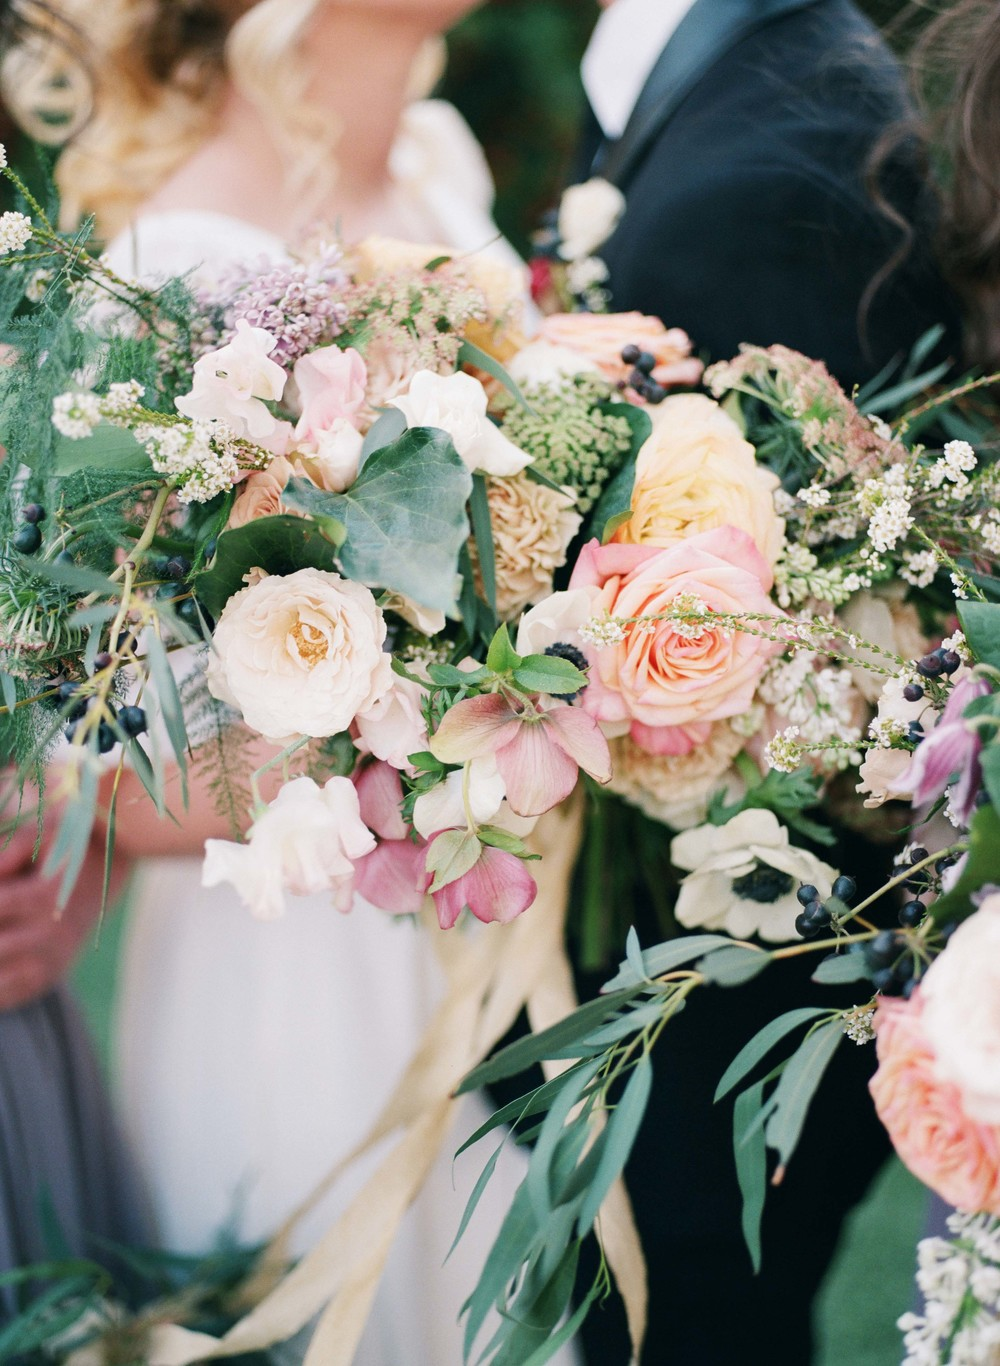 Florals by Carly Potter, Image by Danielle M. Sabol